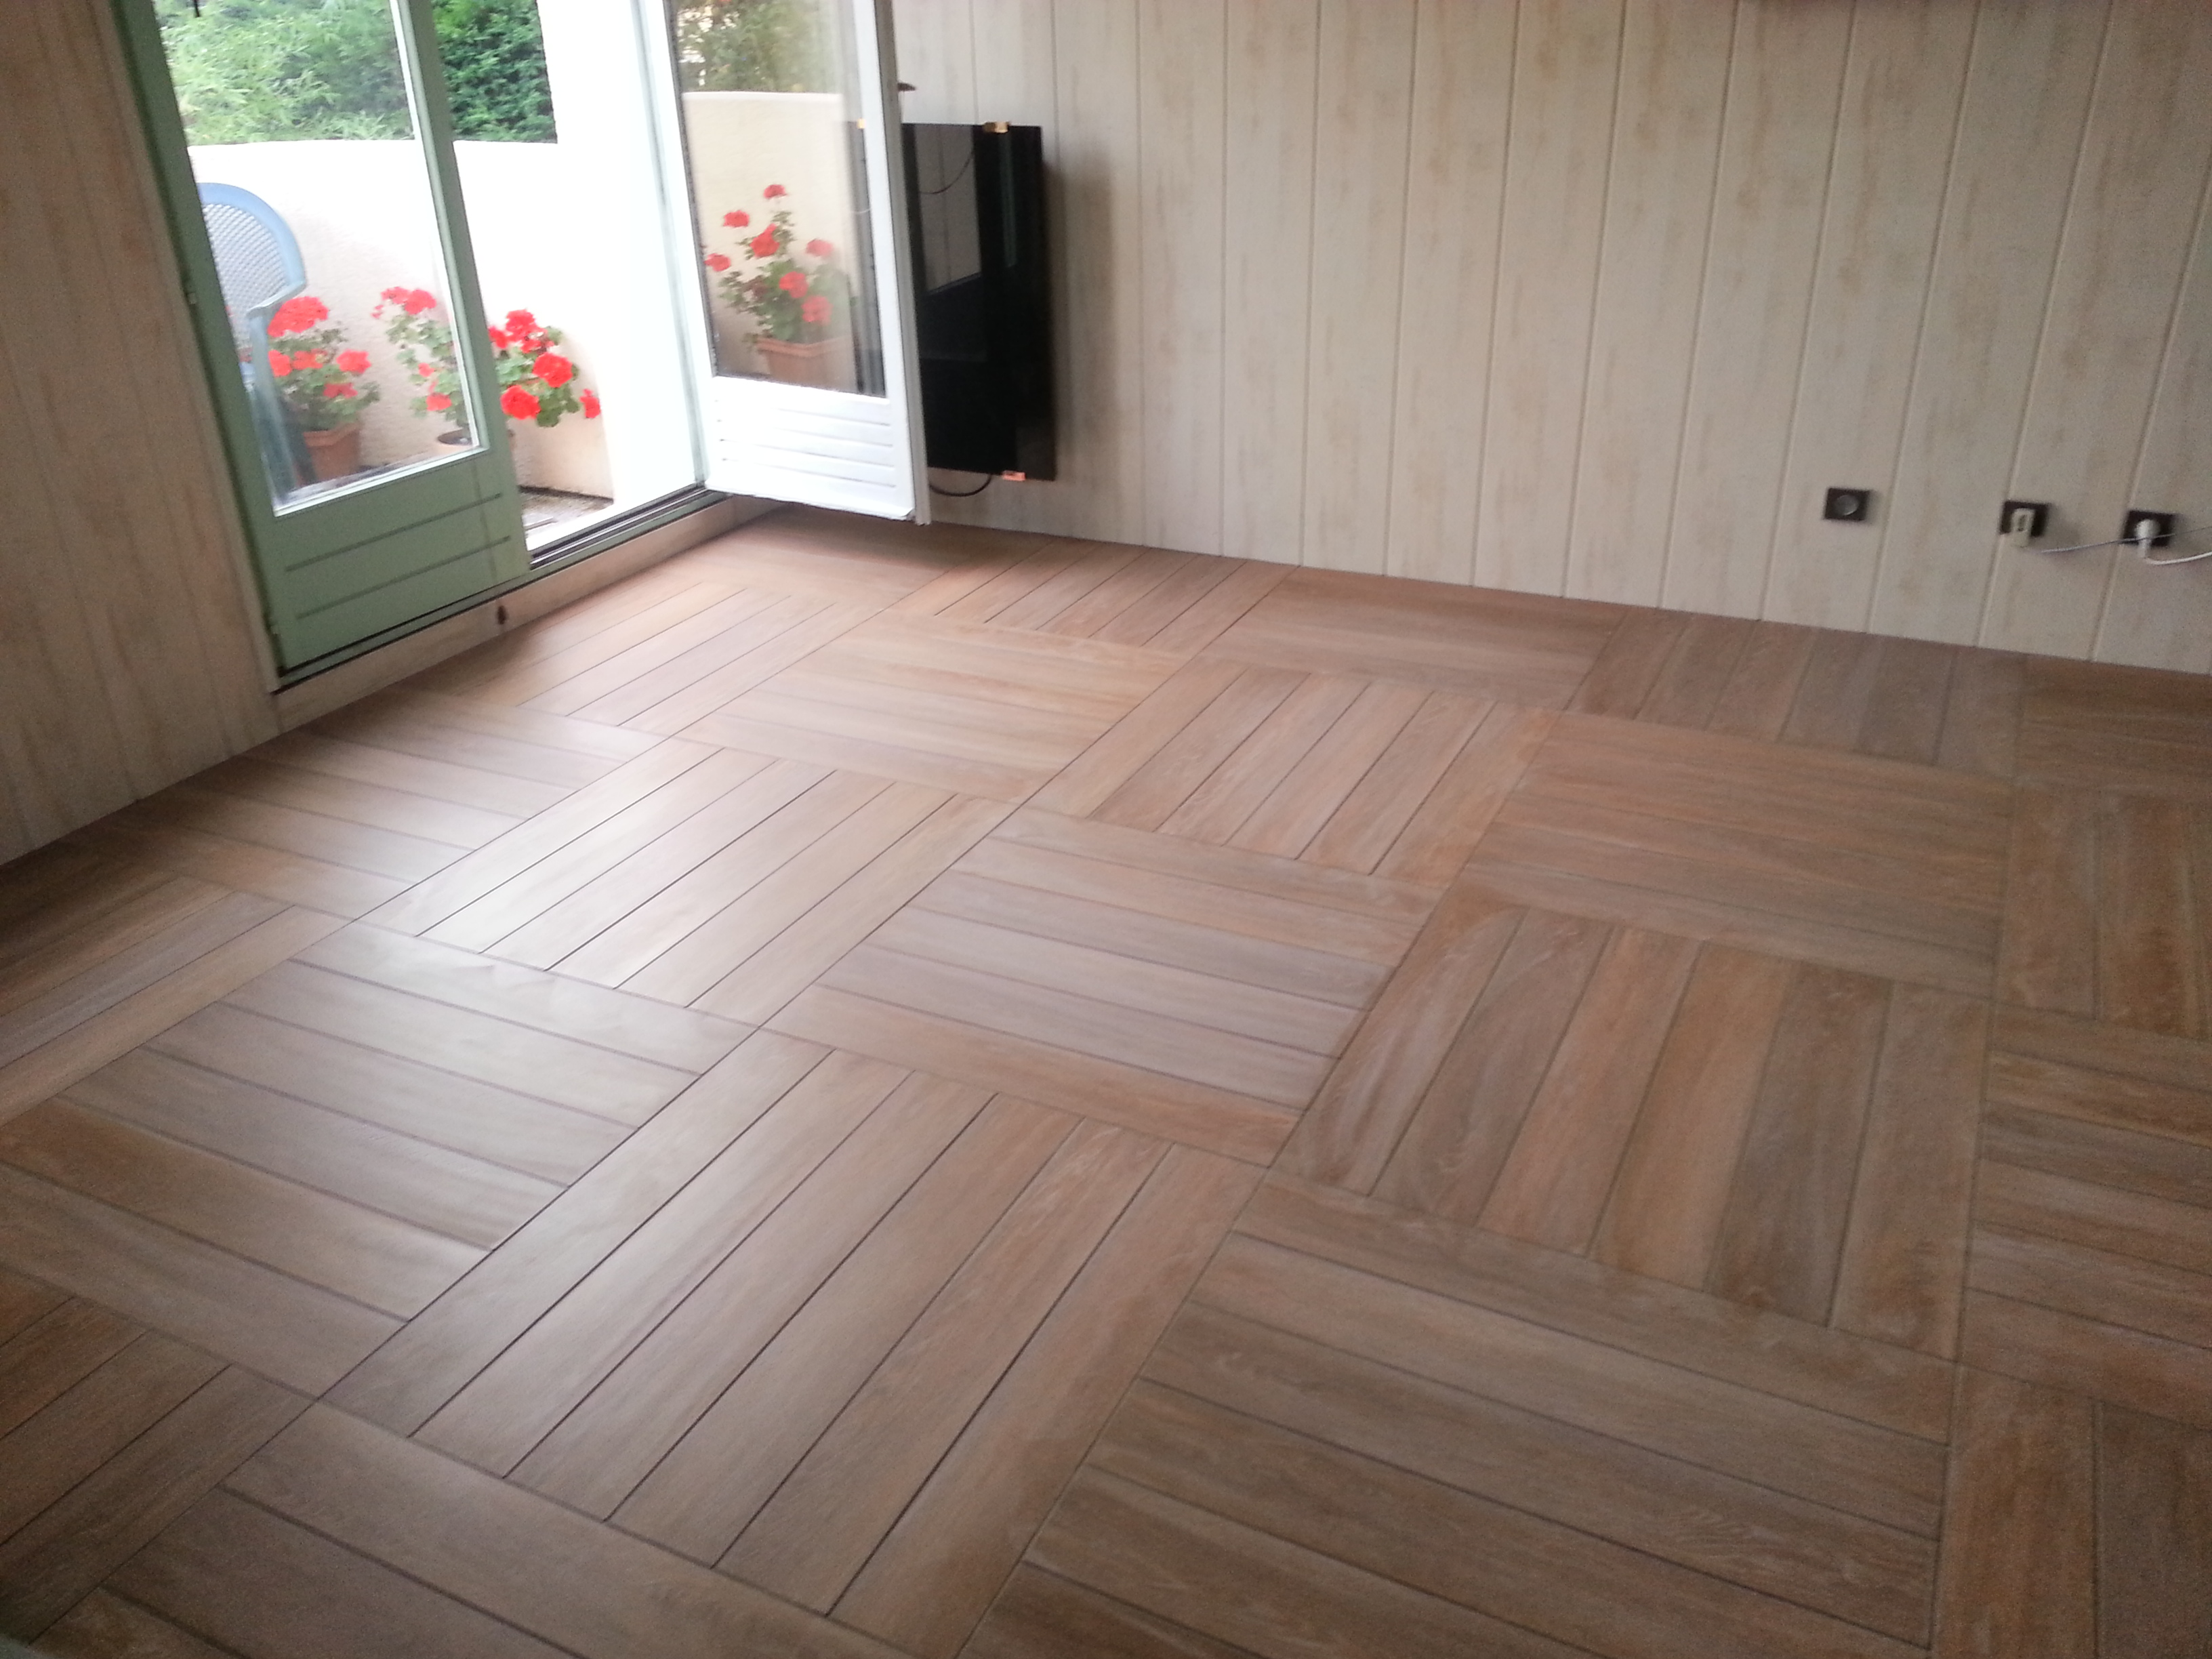 Pose de carrelage imitation parquet for Joint pour carrelage